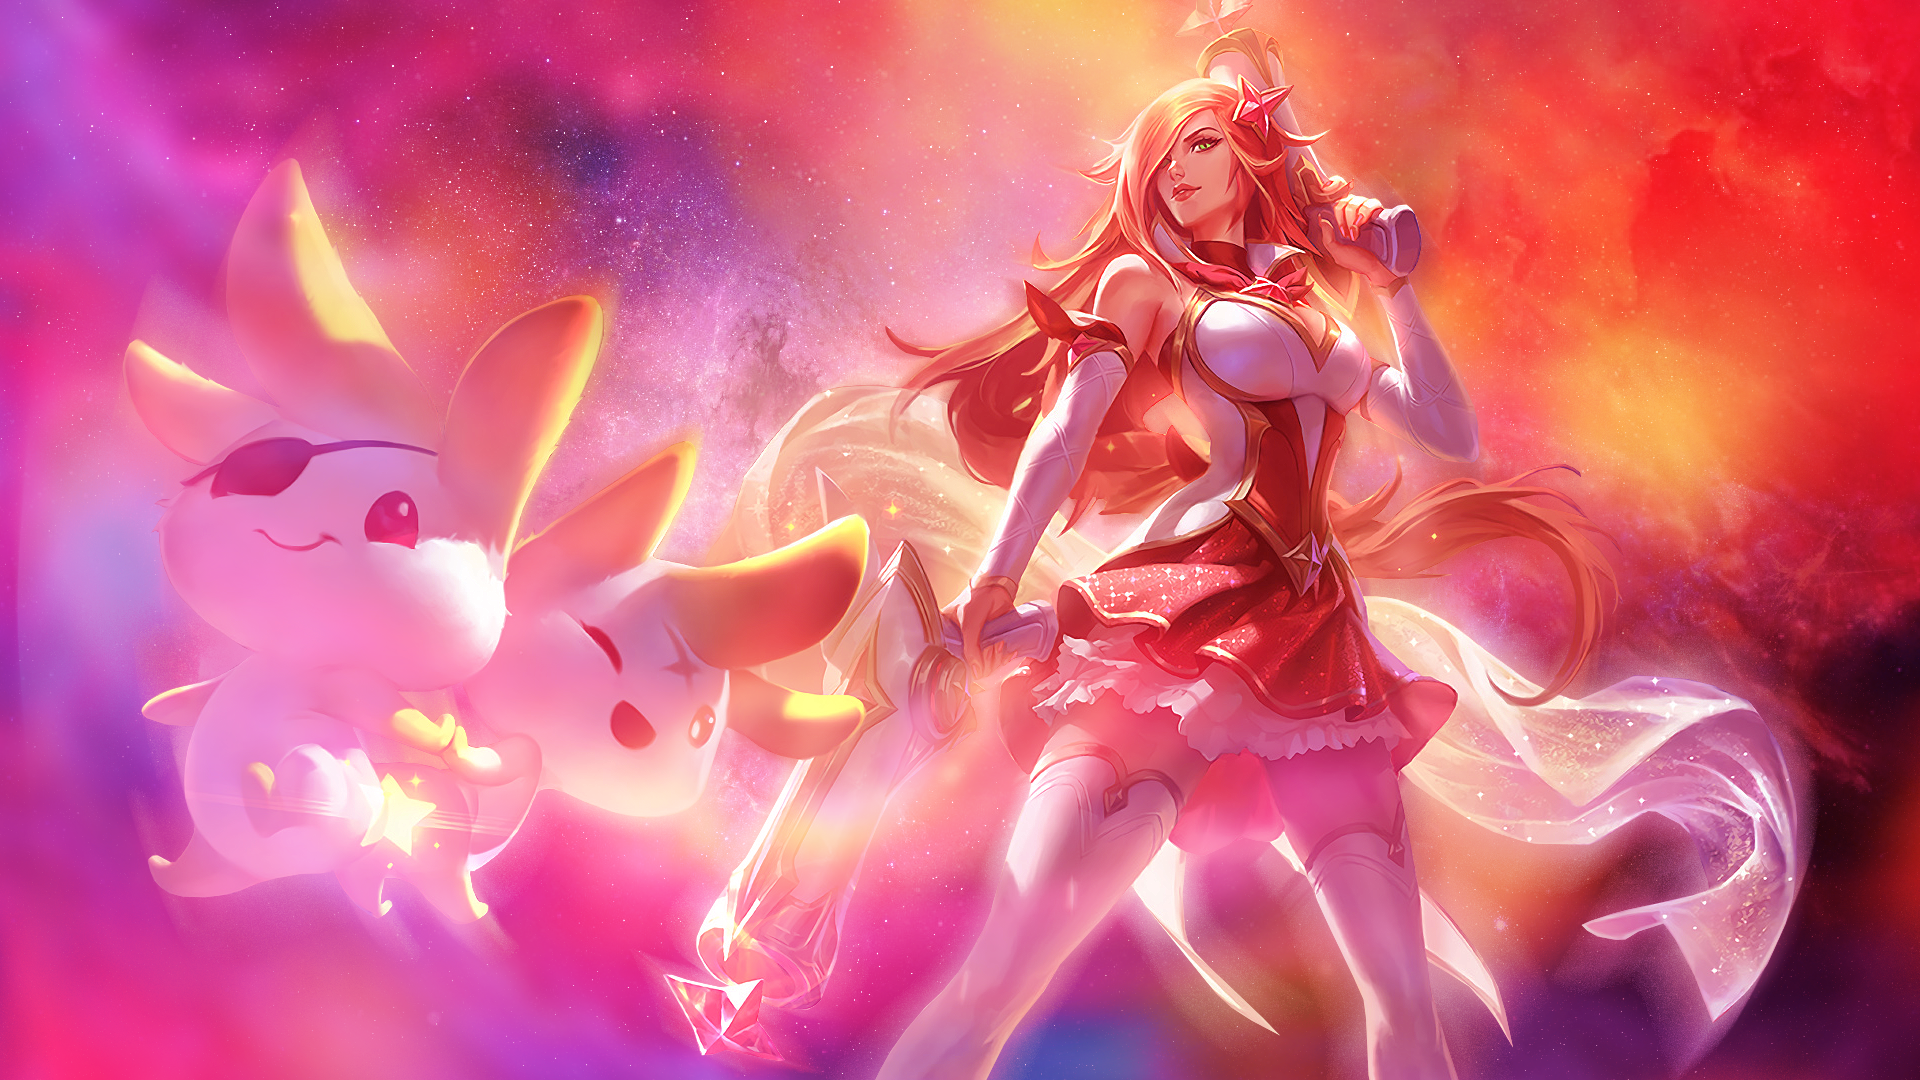 Lol Star Guardian Miss Fortune Wallpaper By Psychomilla On